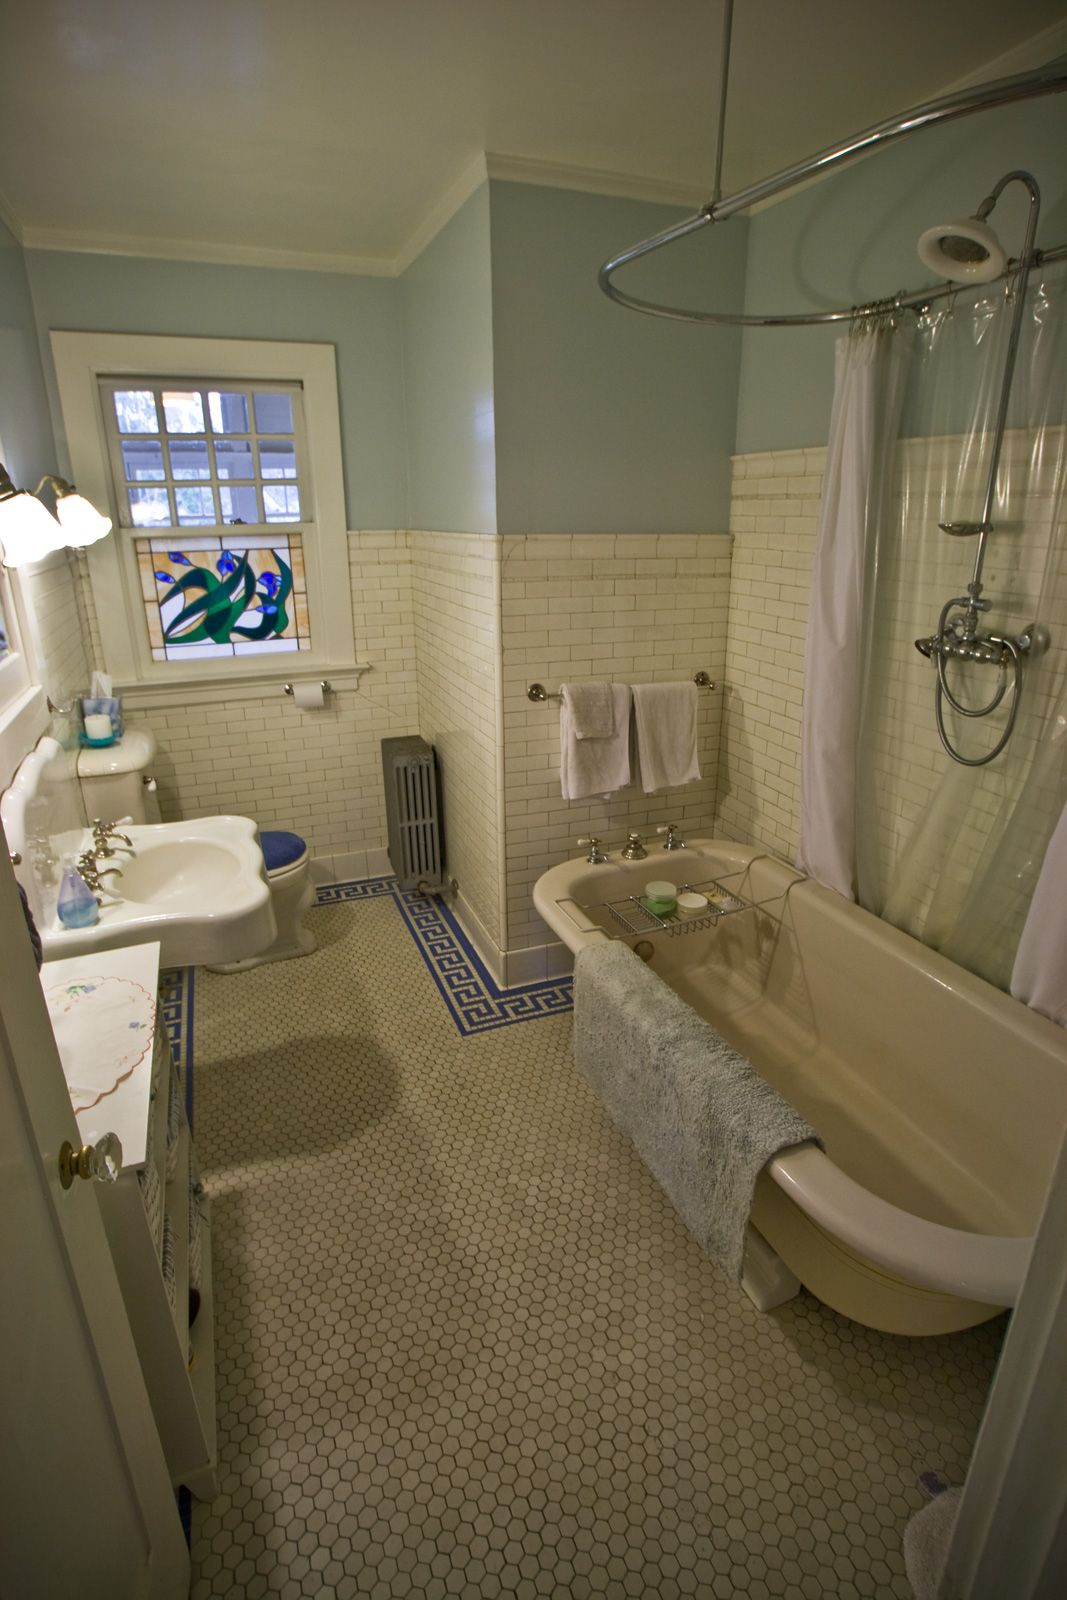 love the tile and bath good layout for a small space 1910 bathroom in craftsman style